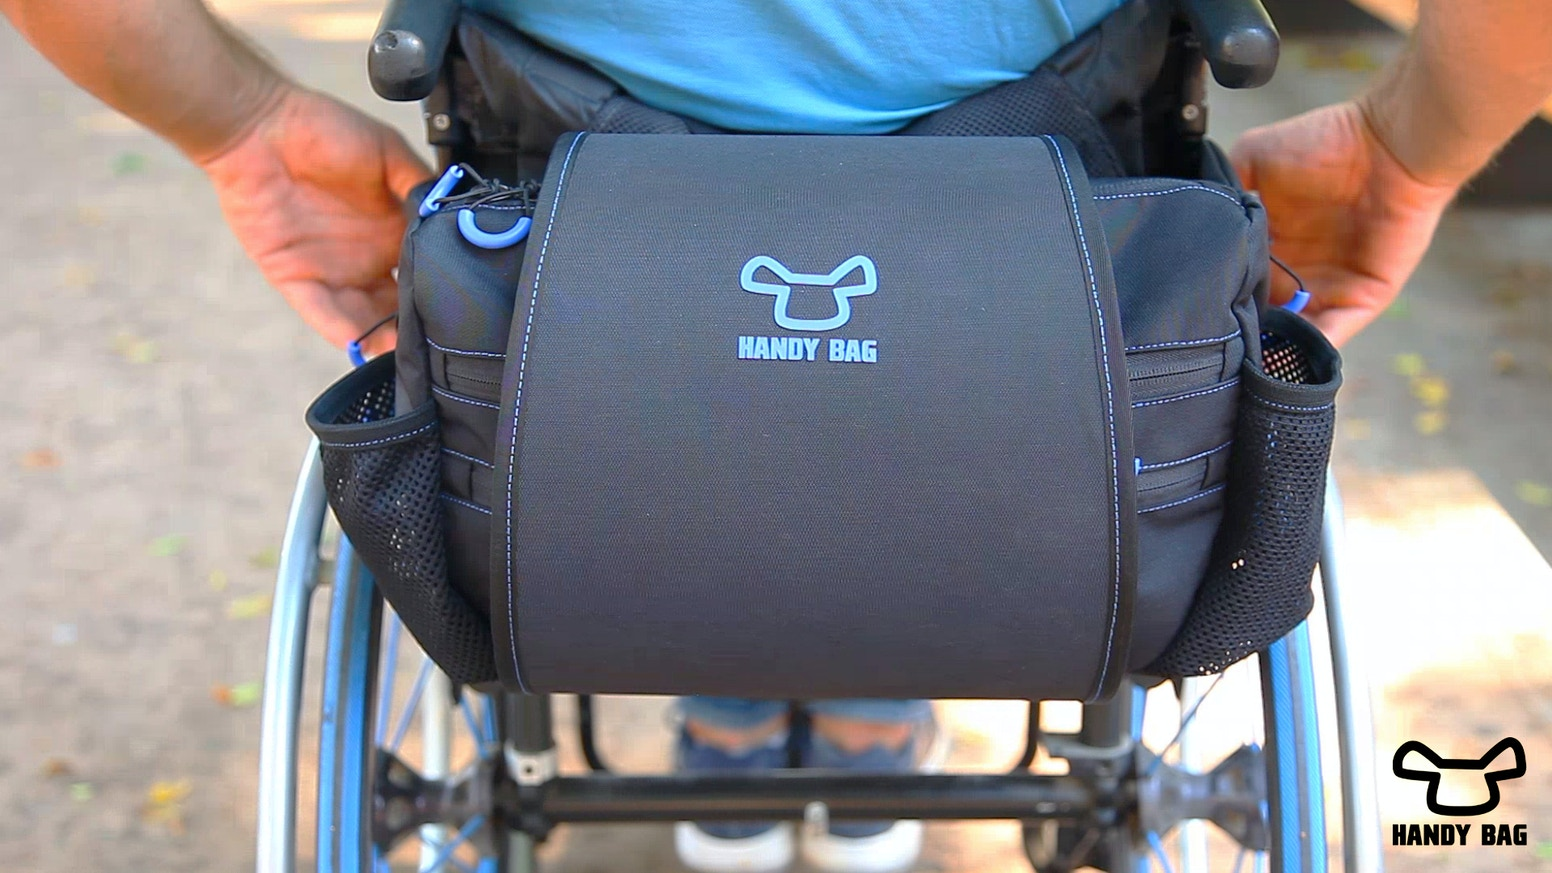 A revolutionary design allowing easy access to personal belongings for wheelchair users